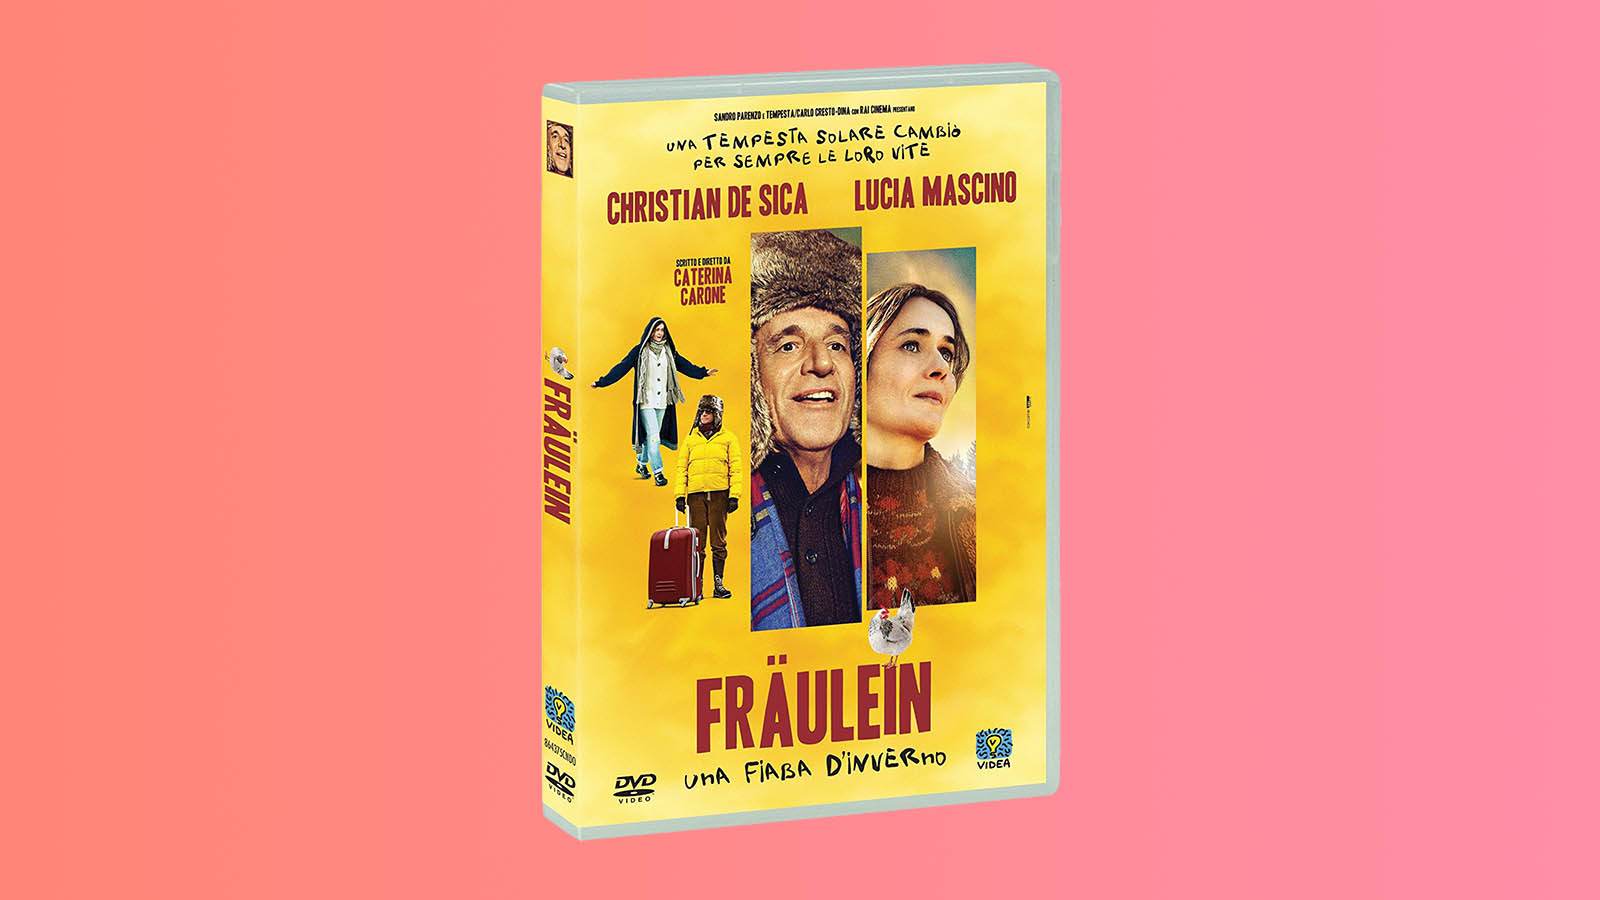 Fräulein has been released on DVD today